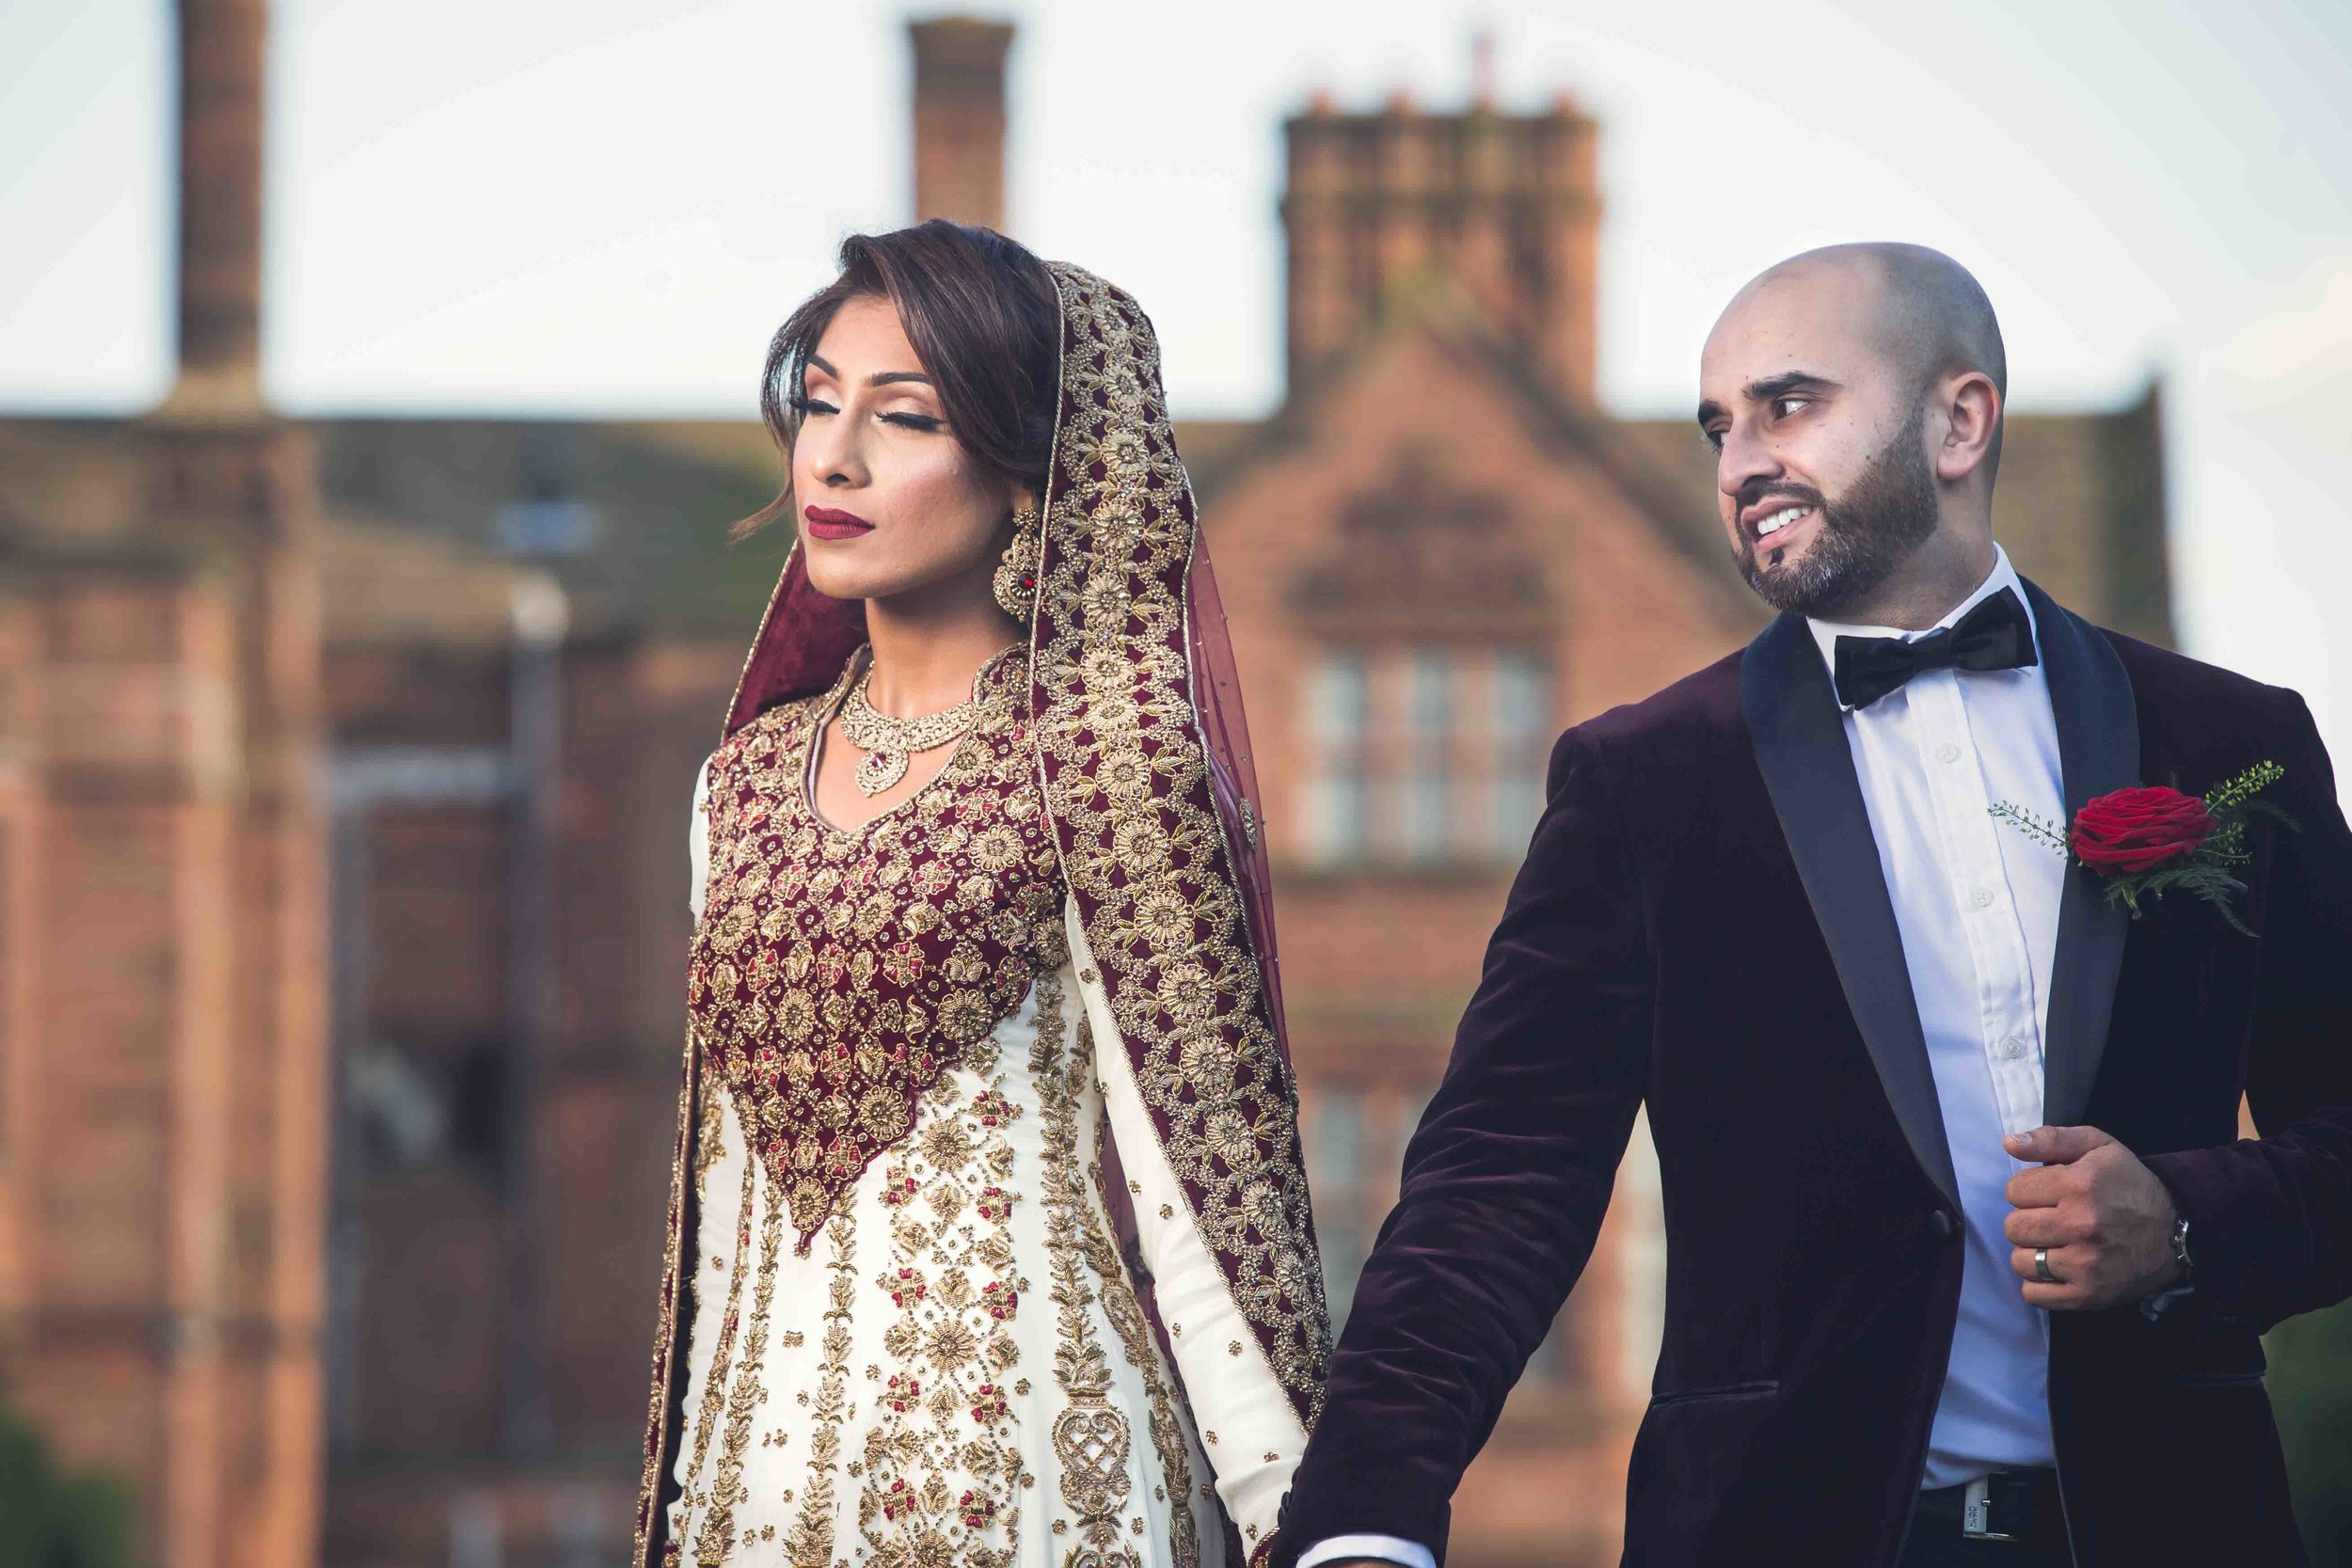 Asian Wedding Photographer Opu Sultan Photography Lyme Park Scotland Edinburgh Glasgow London Manchester Liverpool Birmingham Wedding Photos prewed shoot Azman & Saira Blog-89.jpg